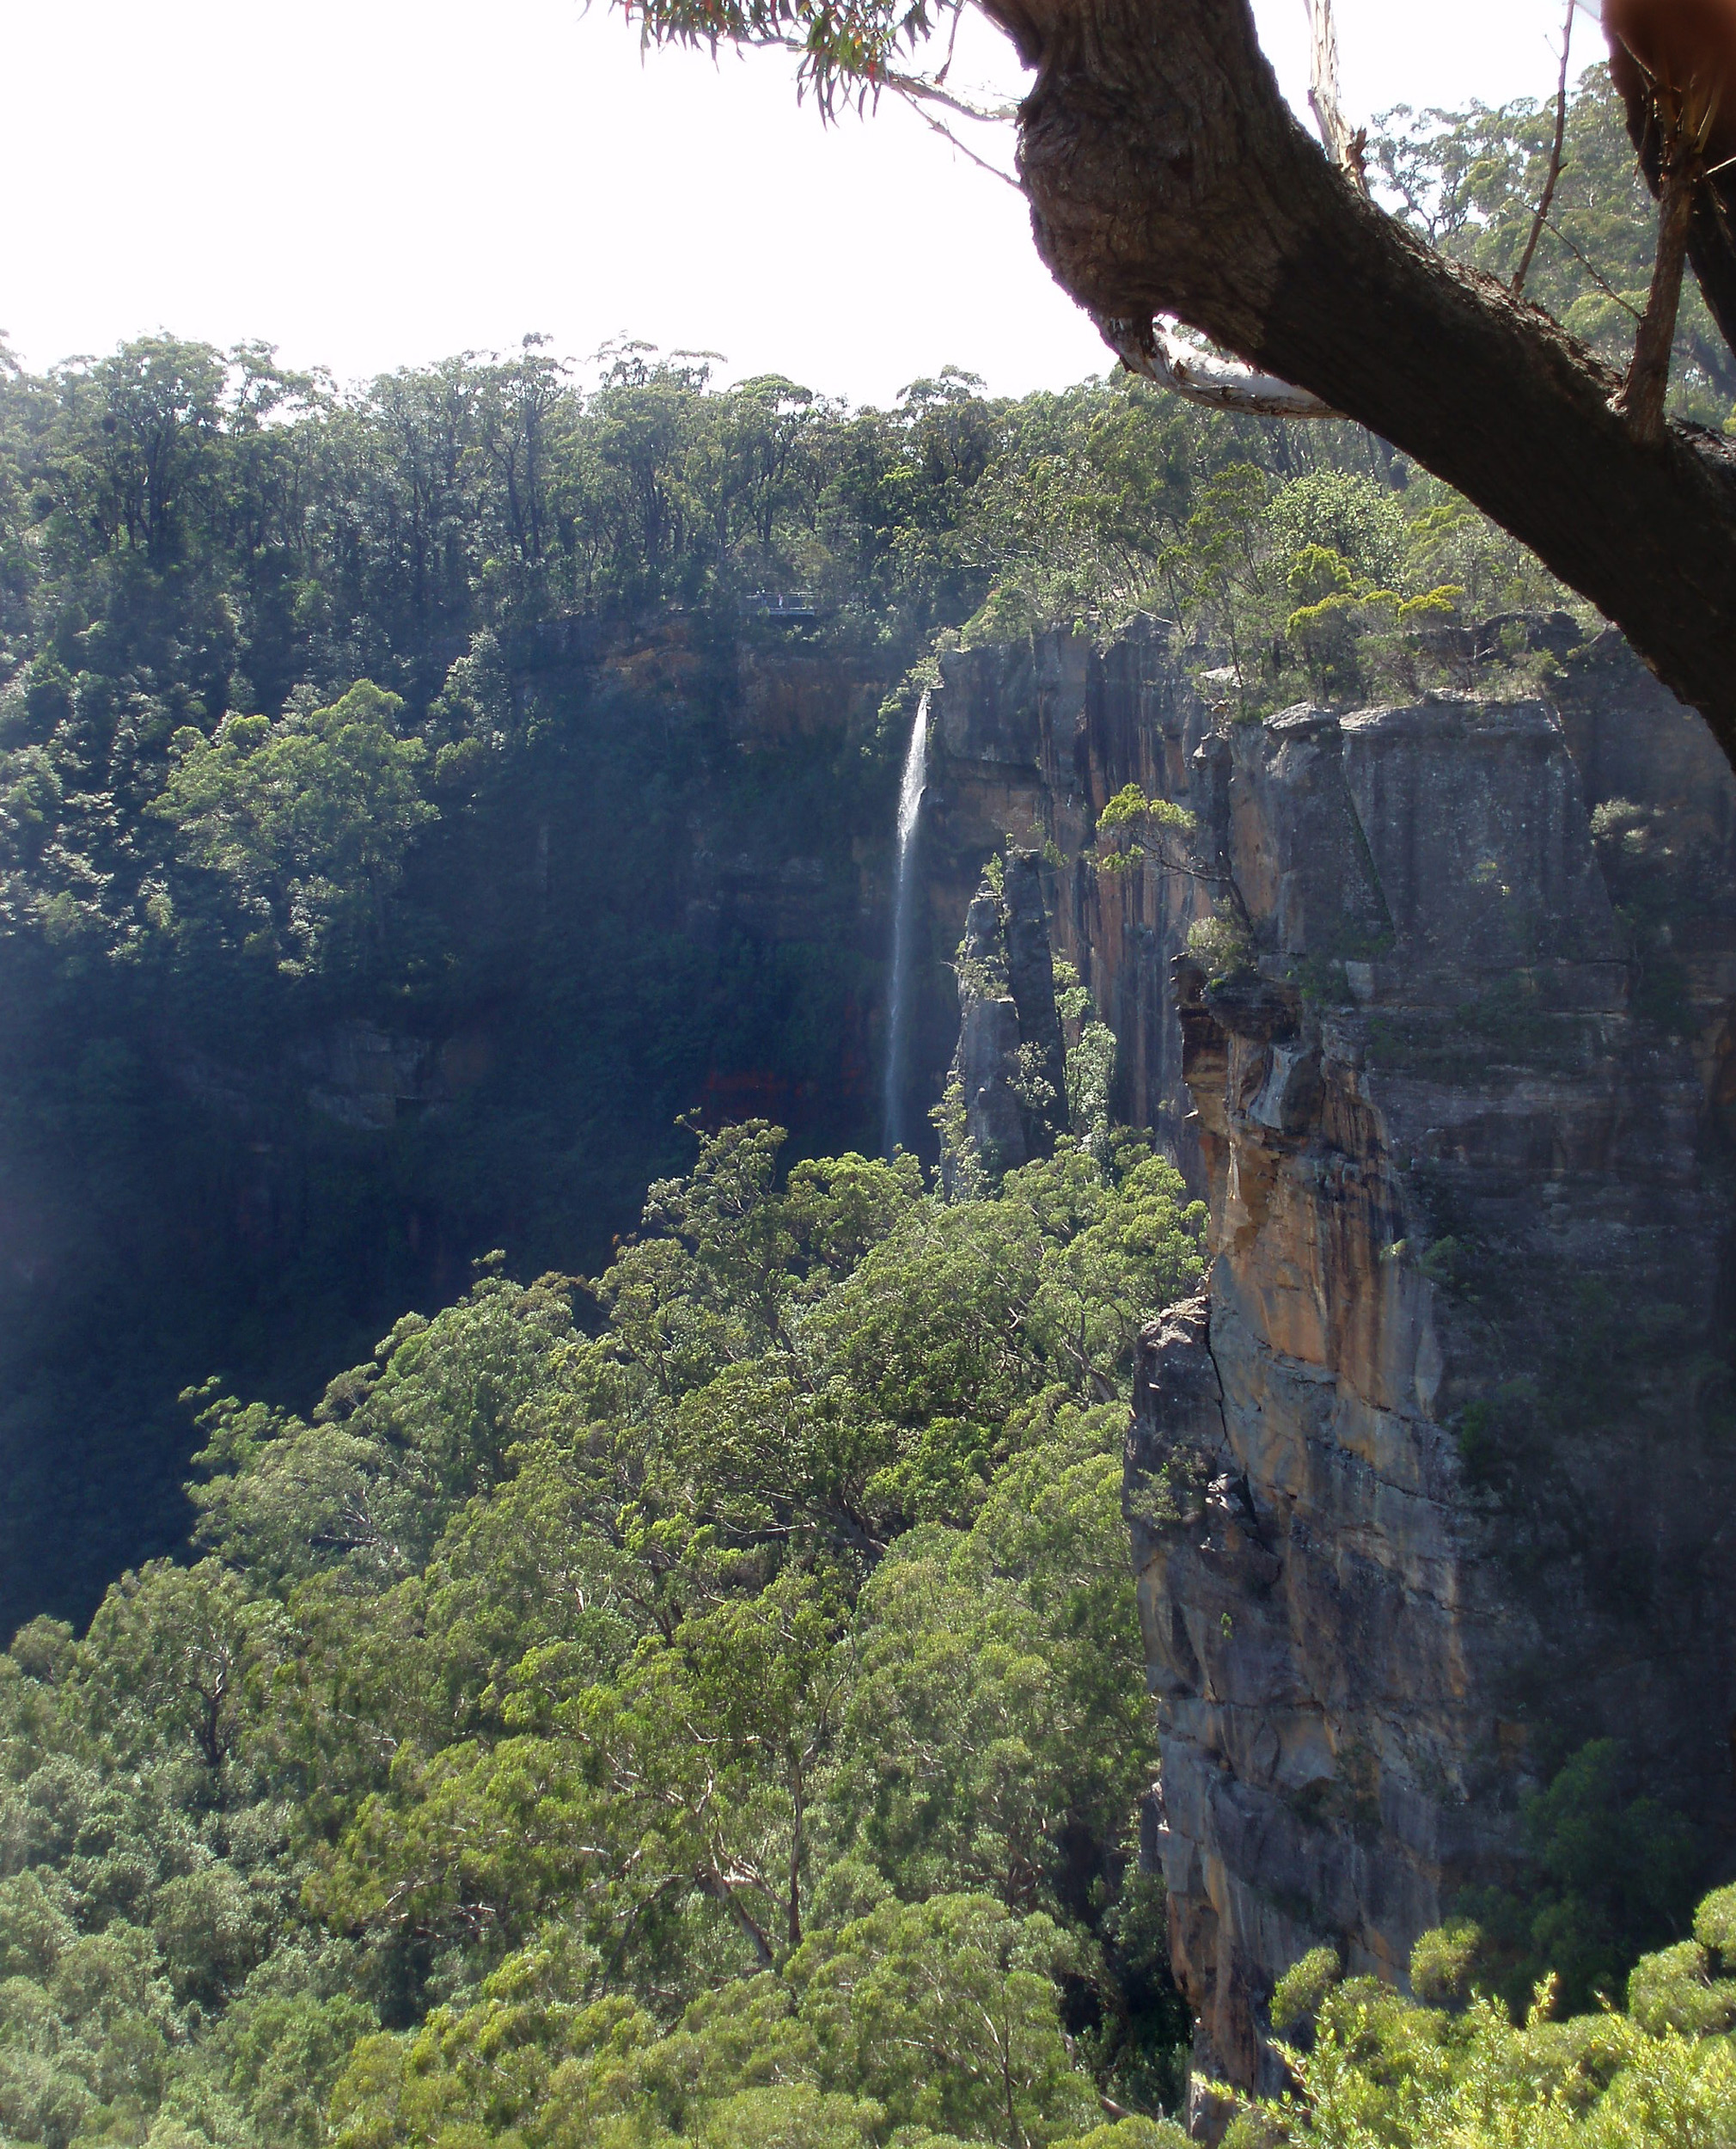 fitzroy falls on Yarrunga creek, in the morton national park, southern highlands, NSW